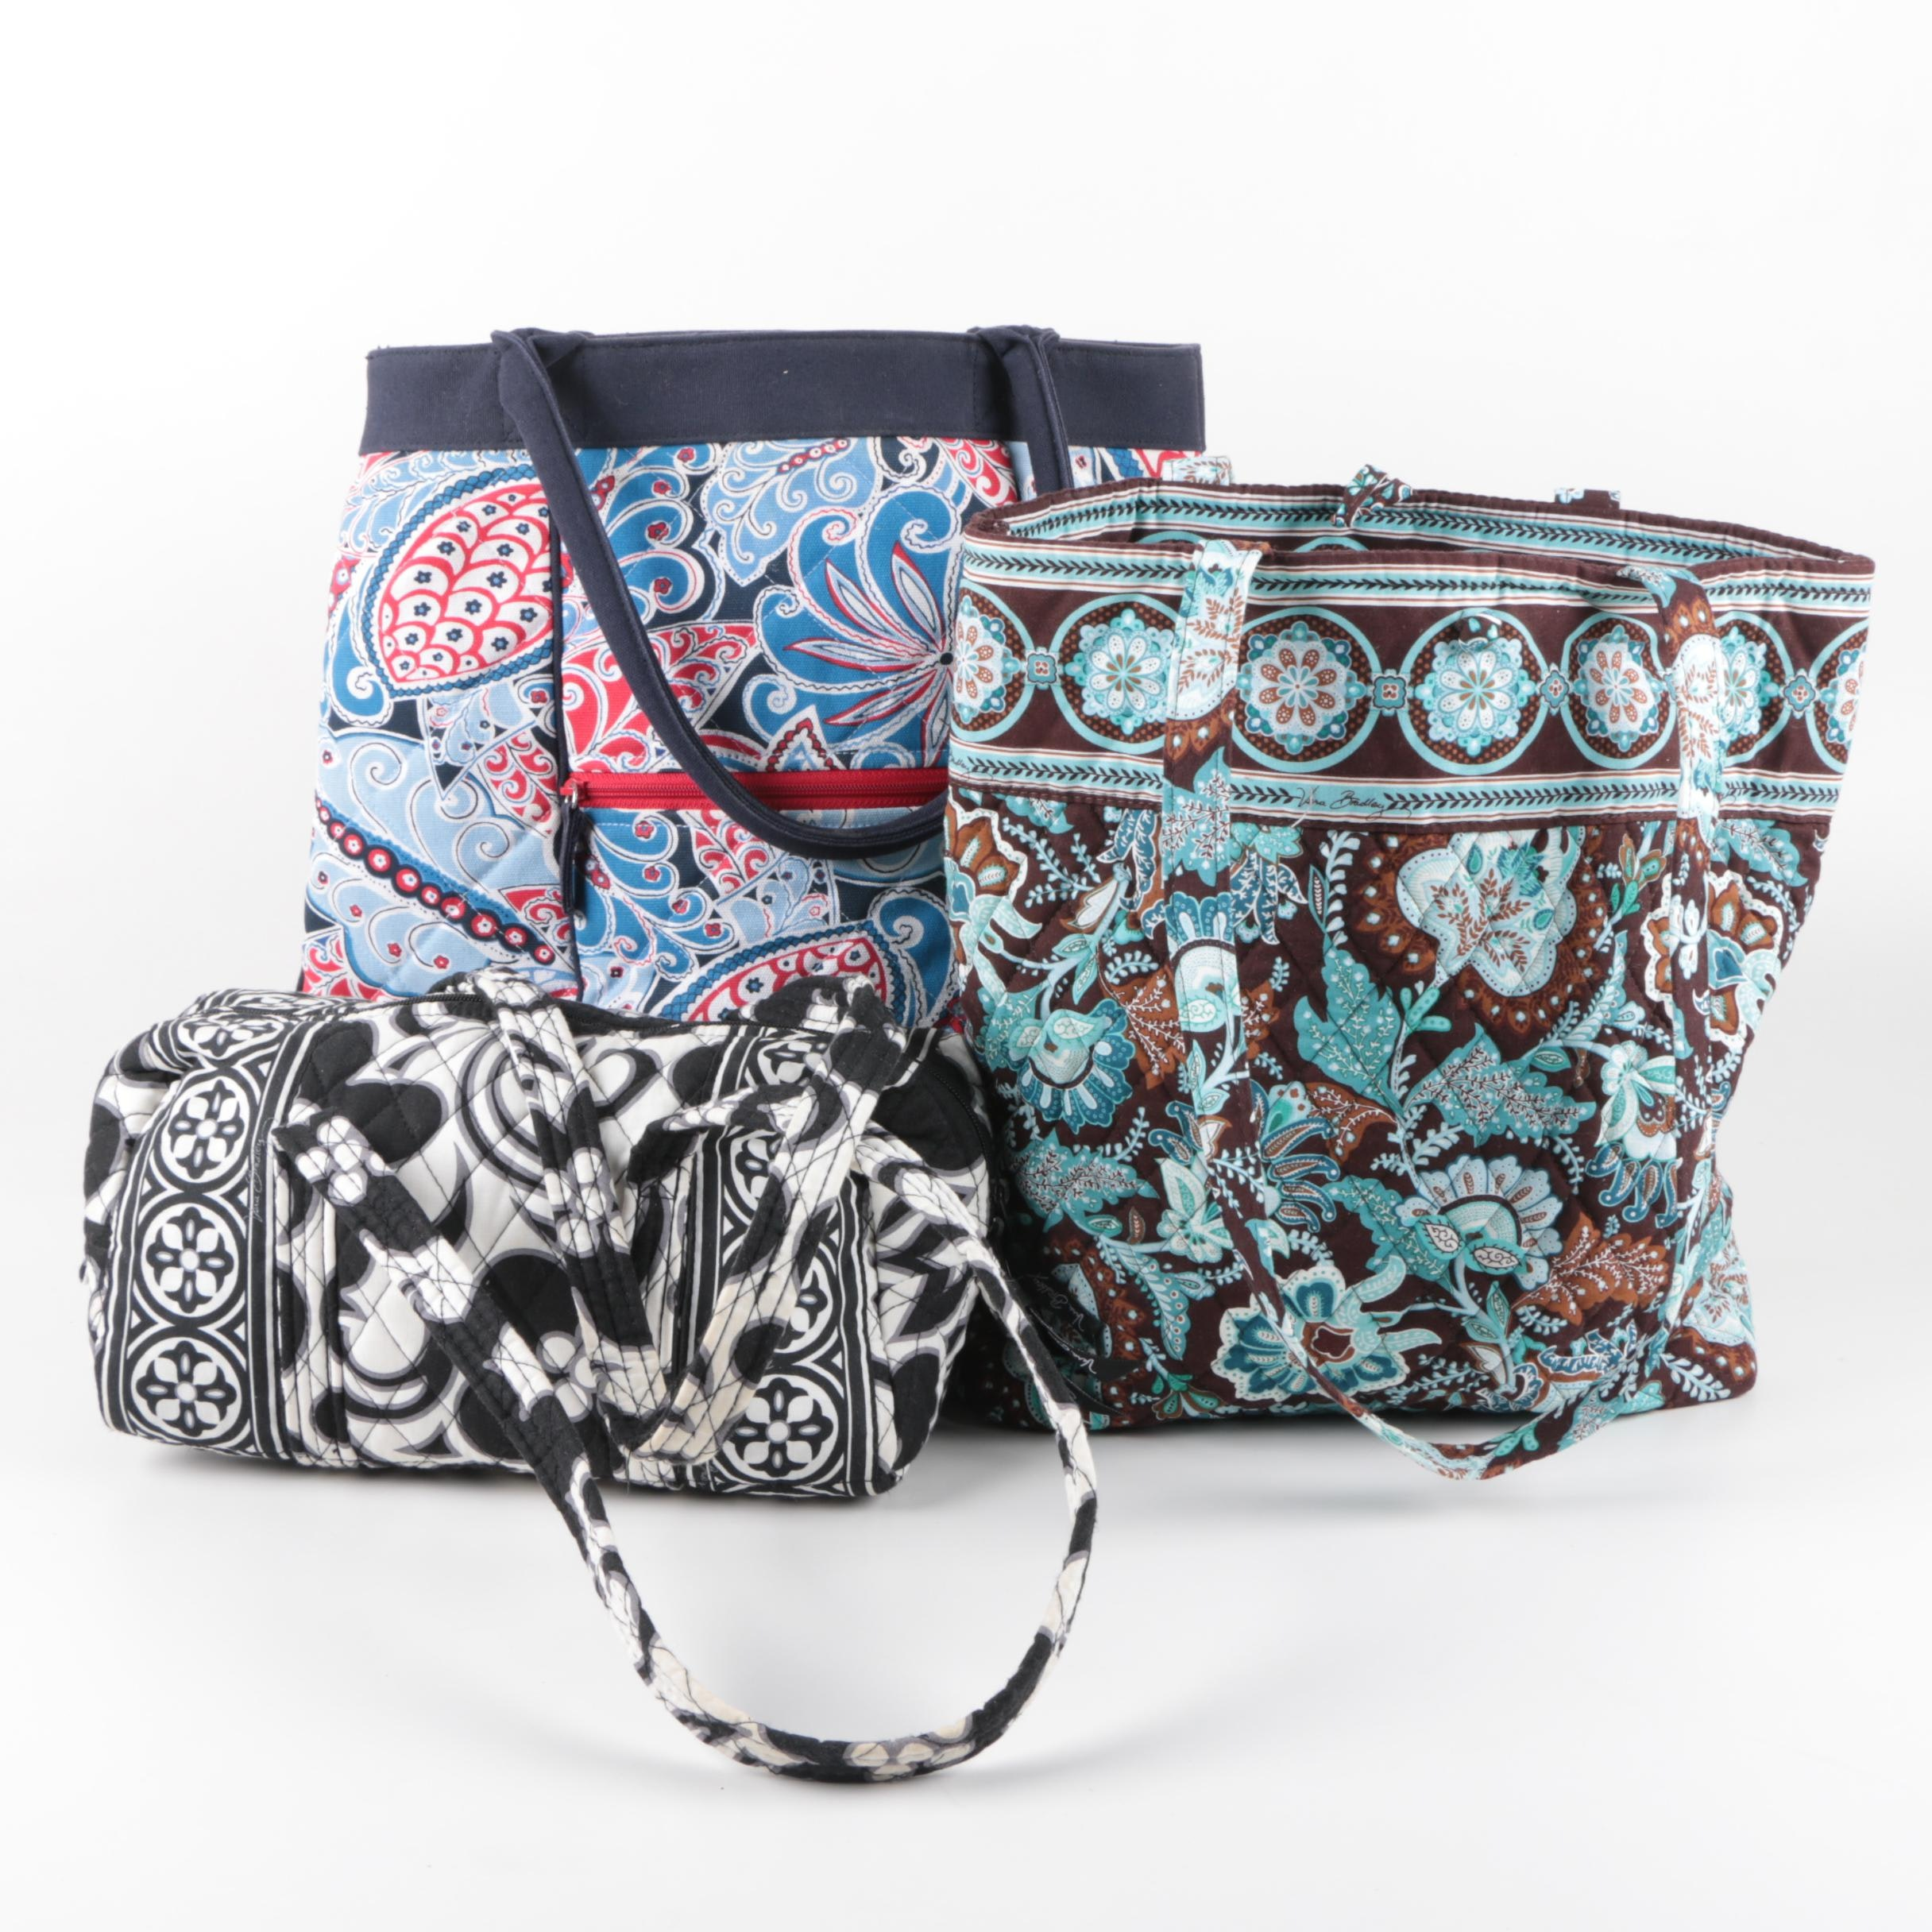 Vera Bradley Handbags and Tote Bags